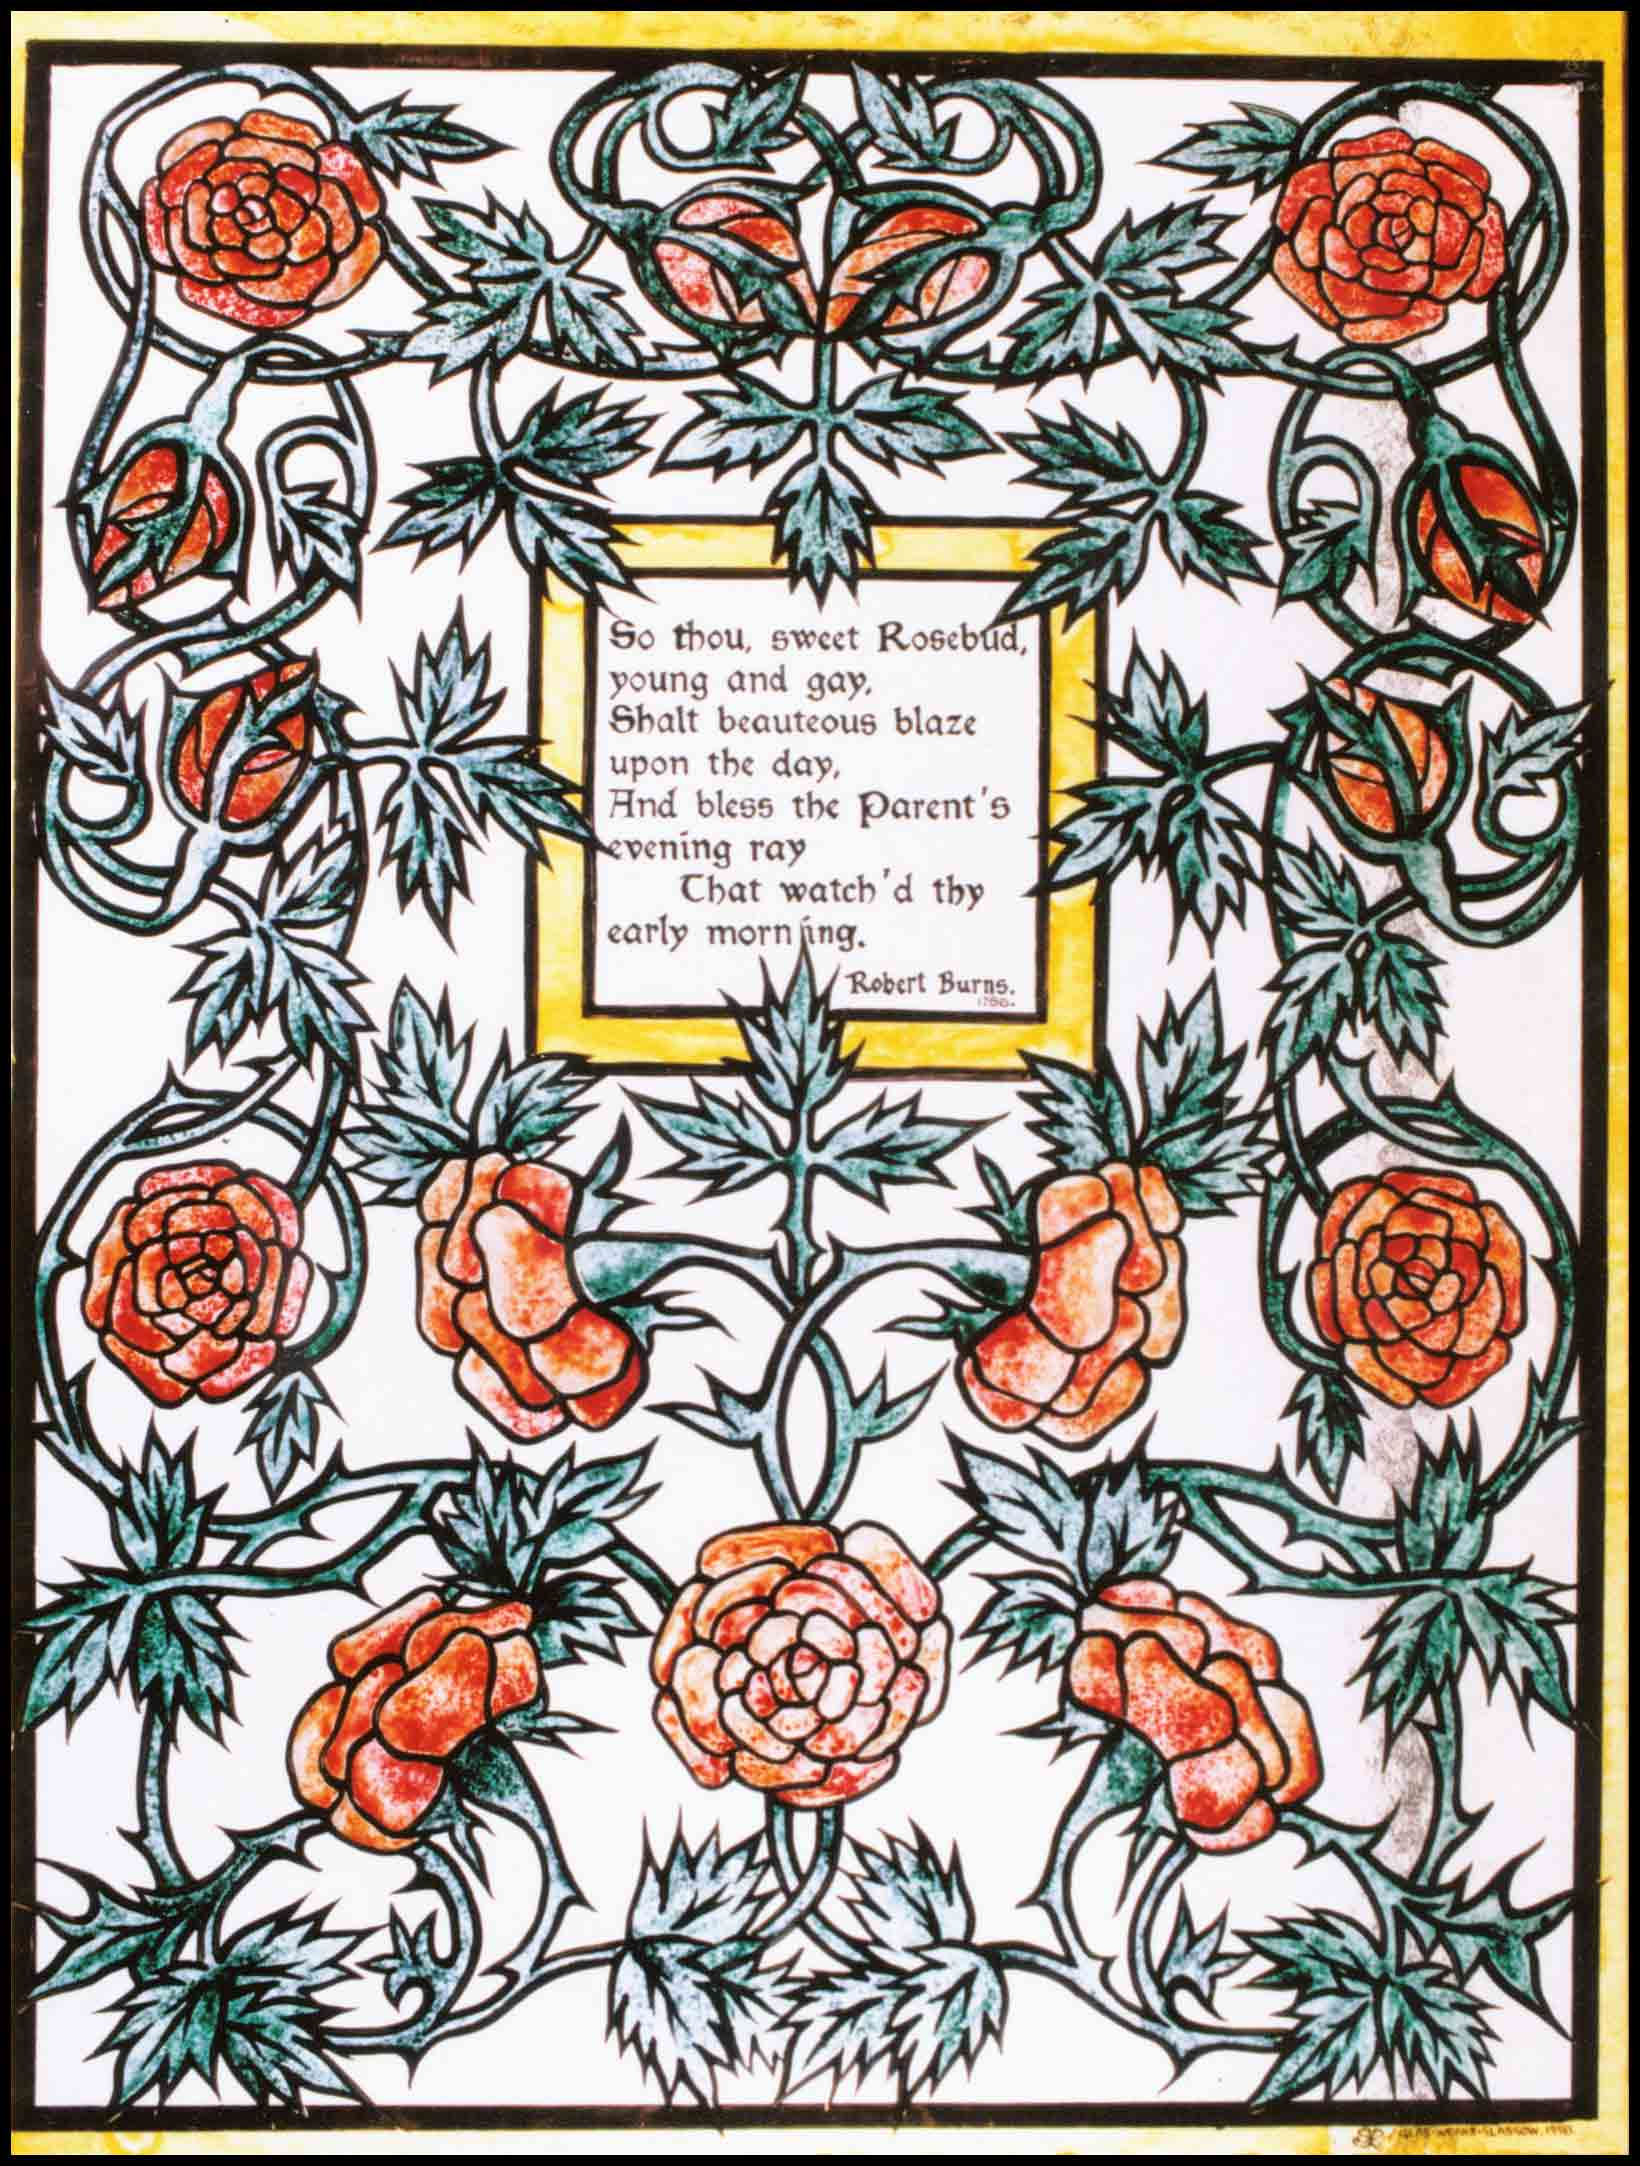 Glasgow style stained glass poem of Robert Burns